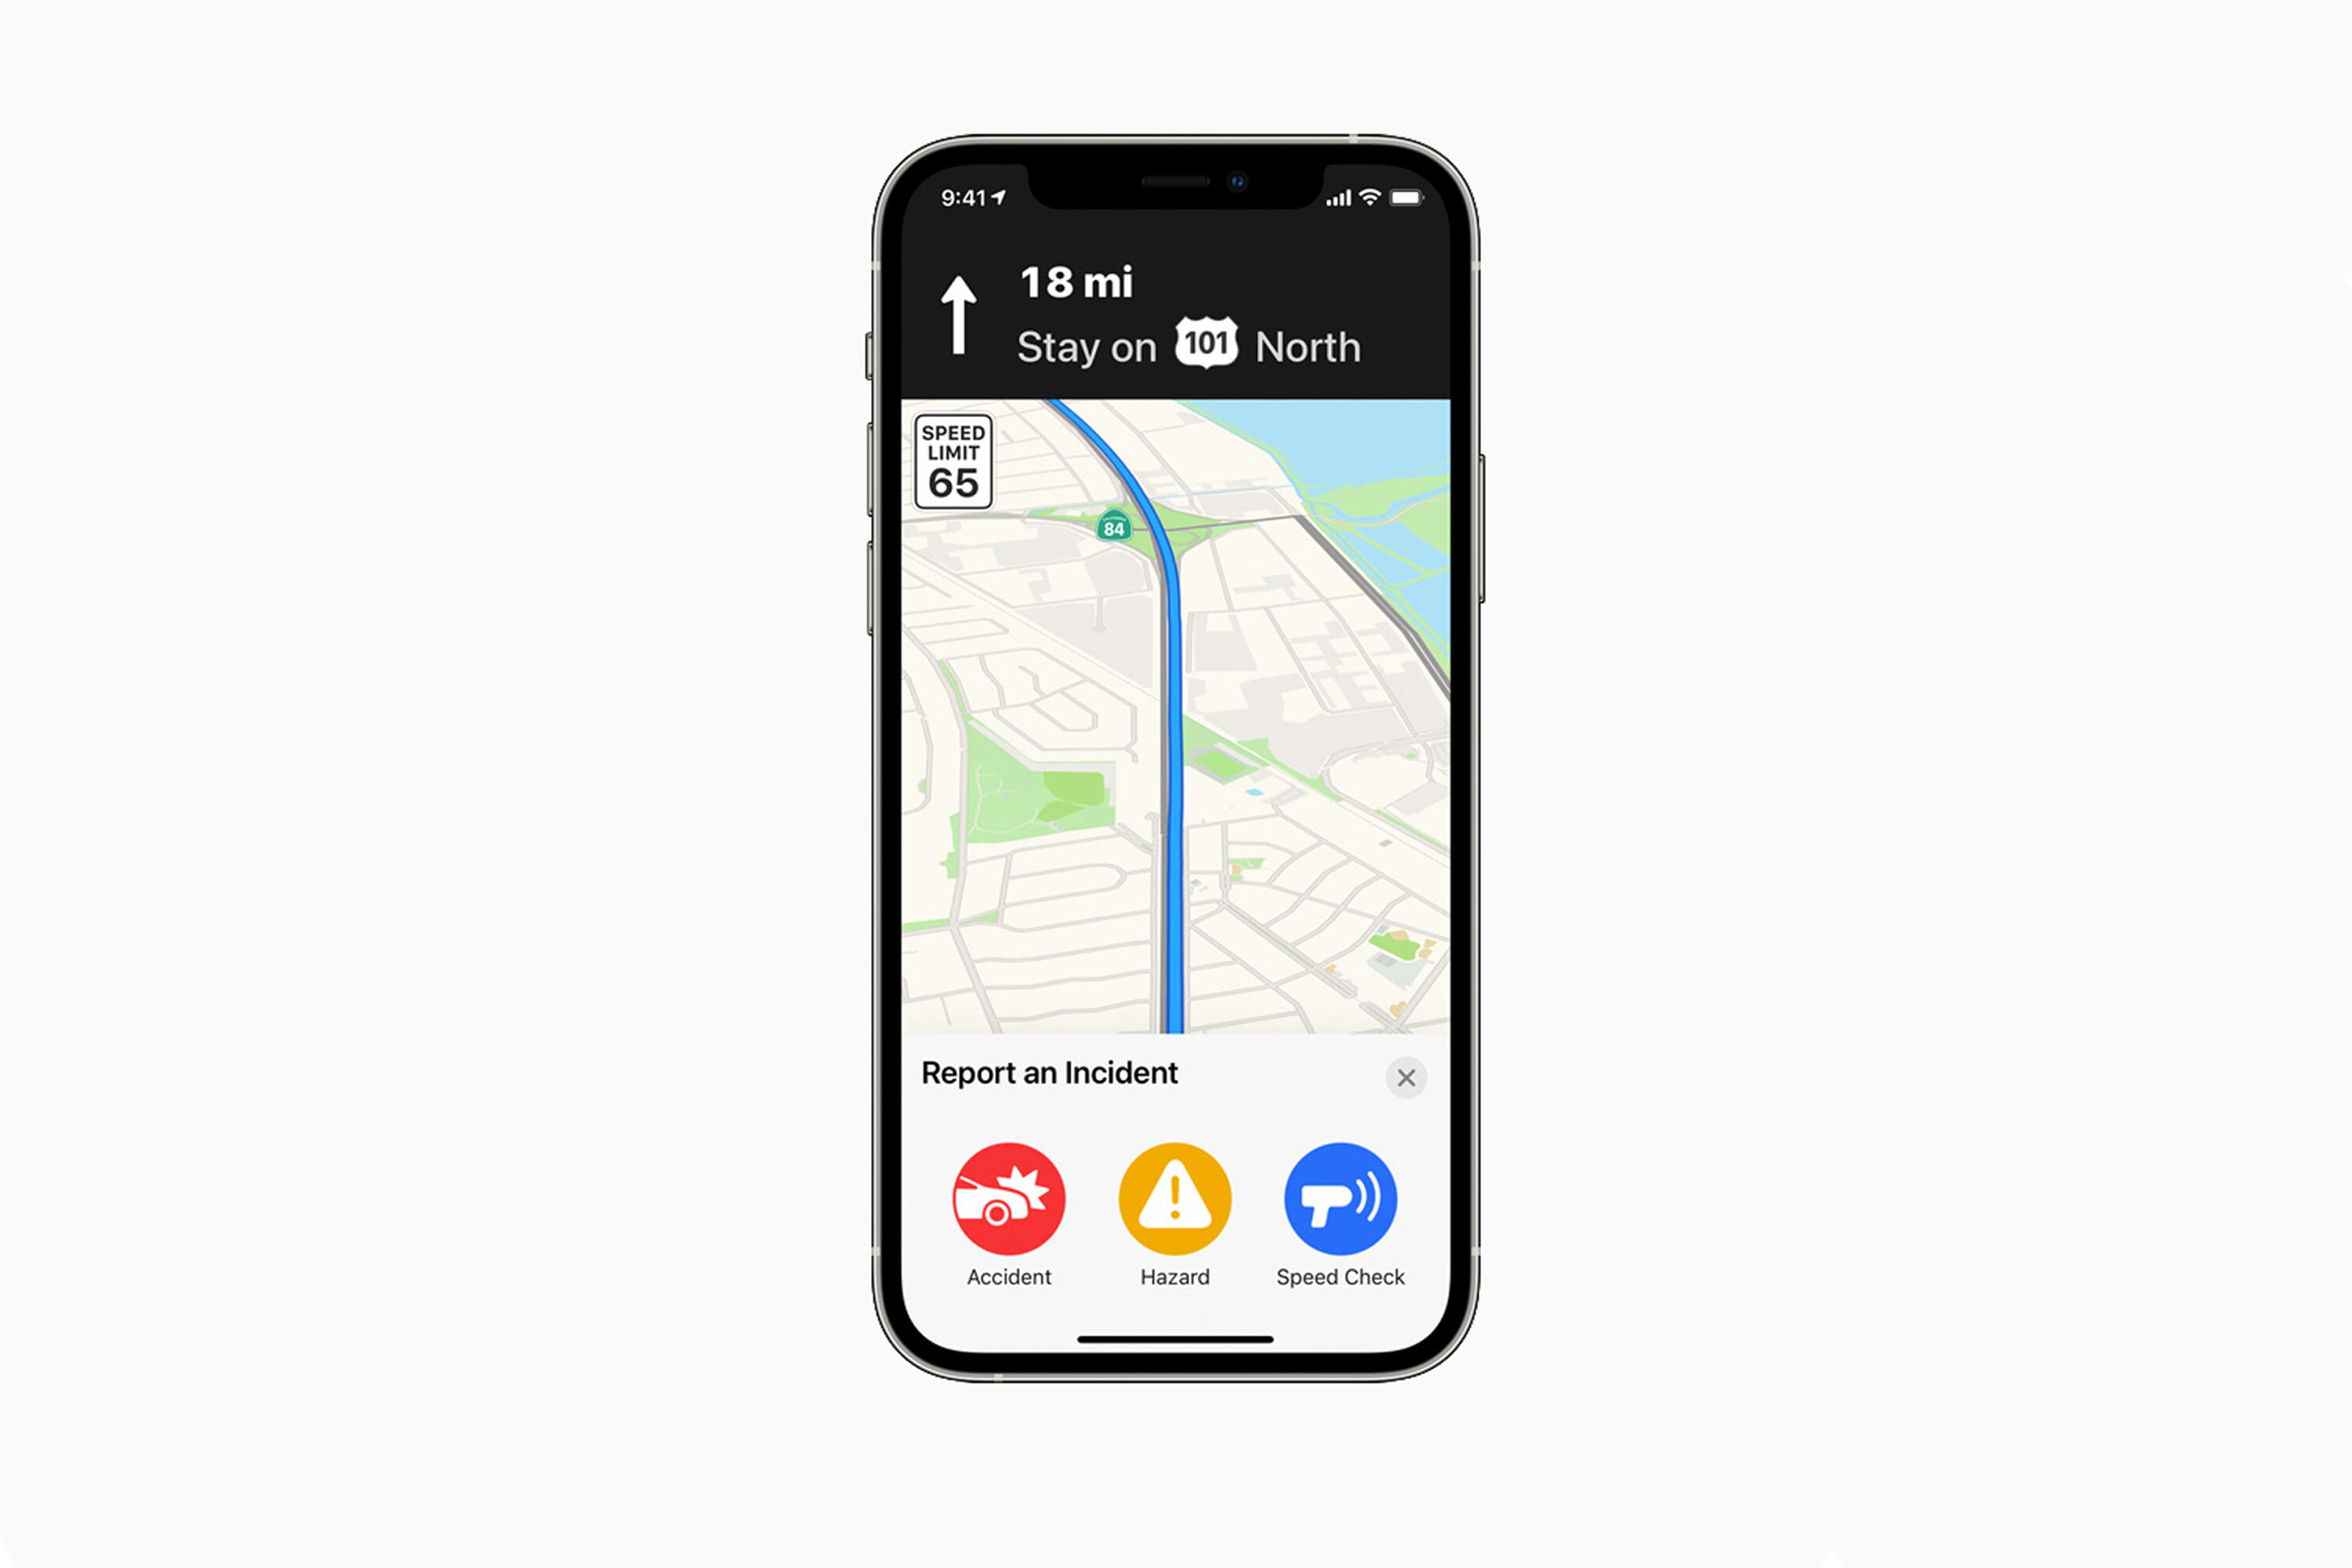 Apple Maps incident reporting